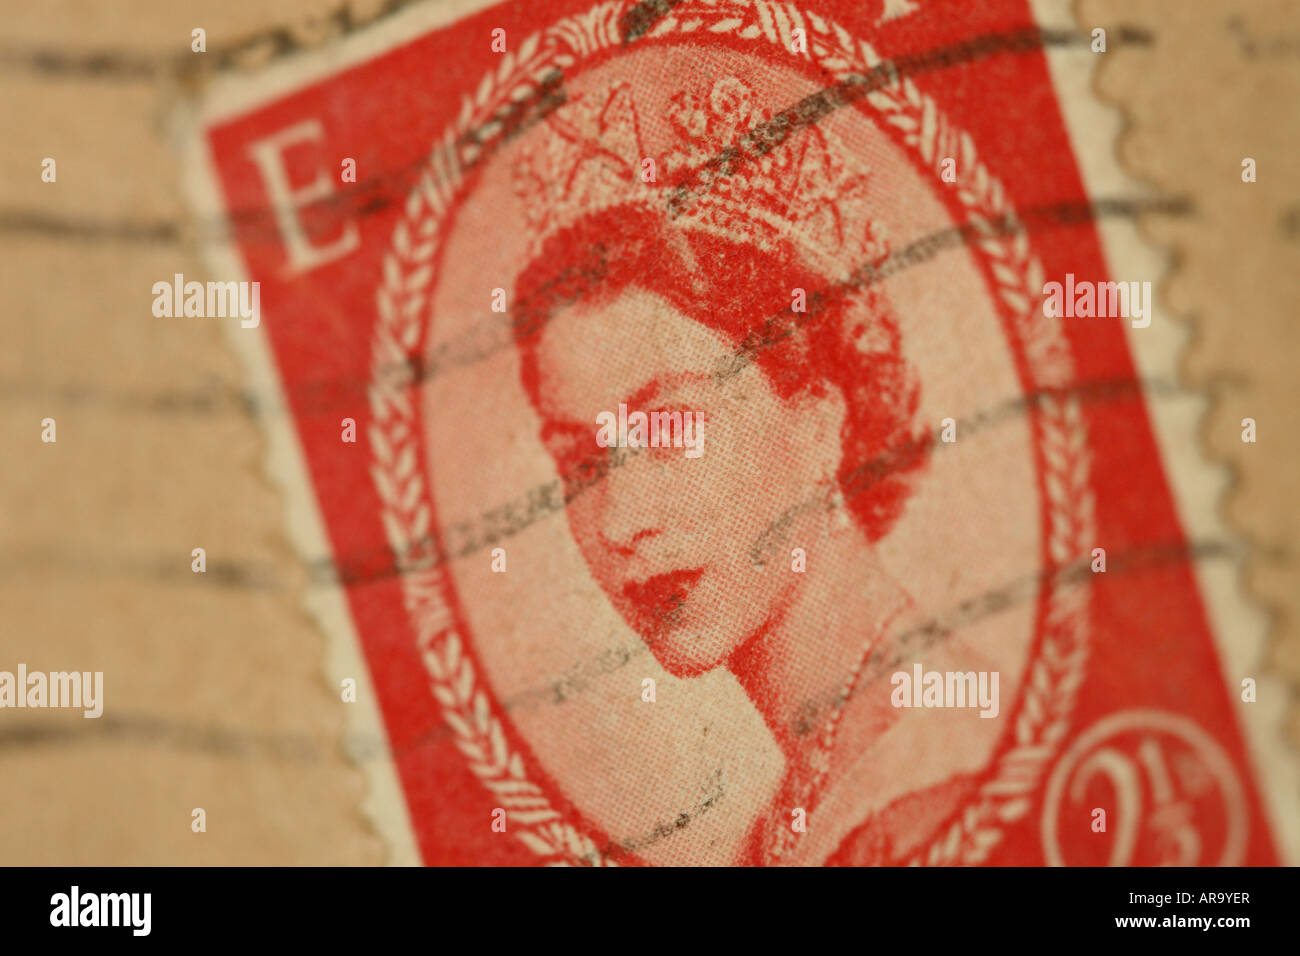 Queen Elizabeth Ii 1950s High Resolution Stock Photography